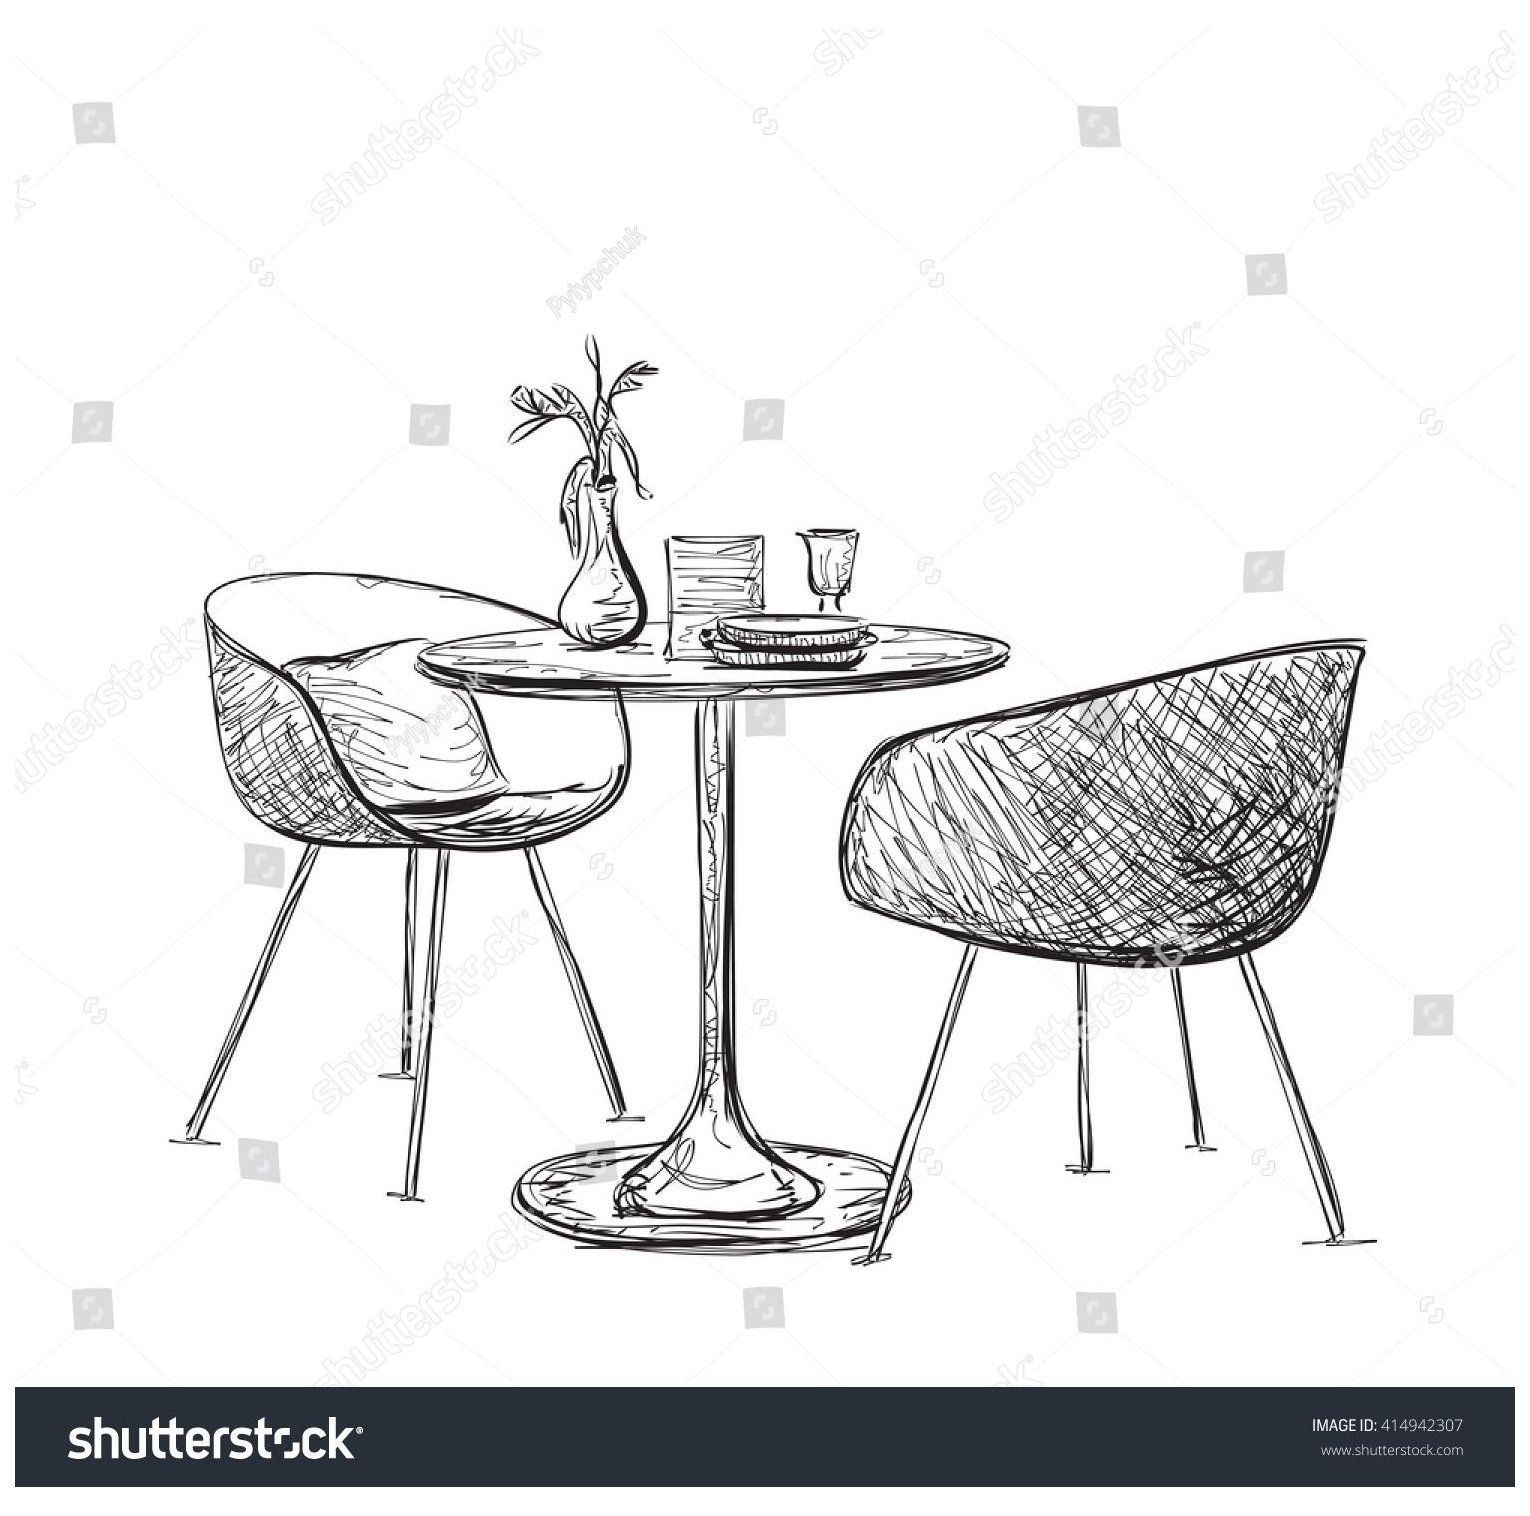 Sketch Modern Interior Table Chairs Hand Stock Vector Royalty Free 414942307 Sketch Of M In 2020 Interior Design Sketches How To Draw Hands Furniture Design Sketches